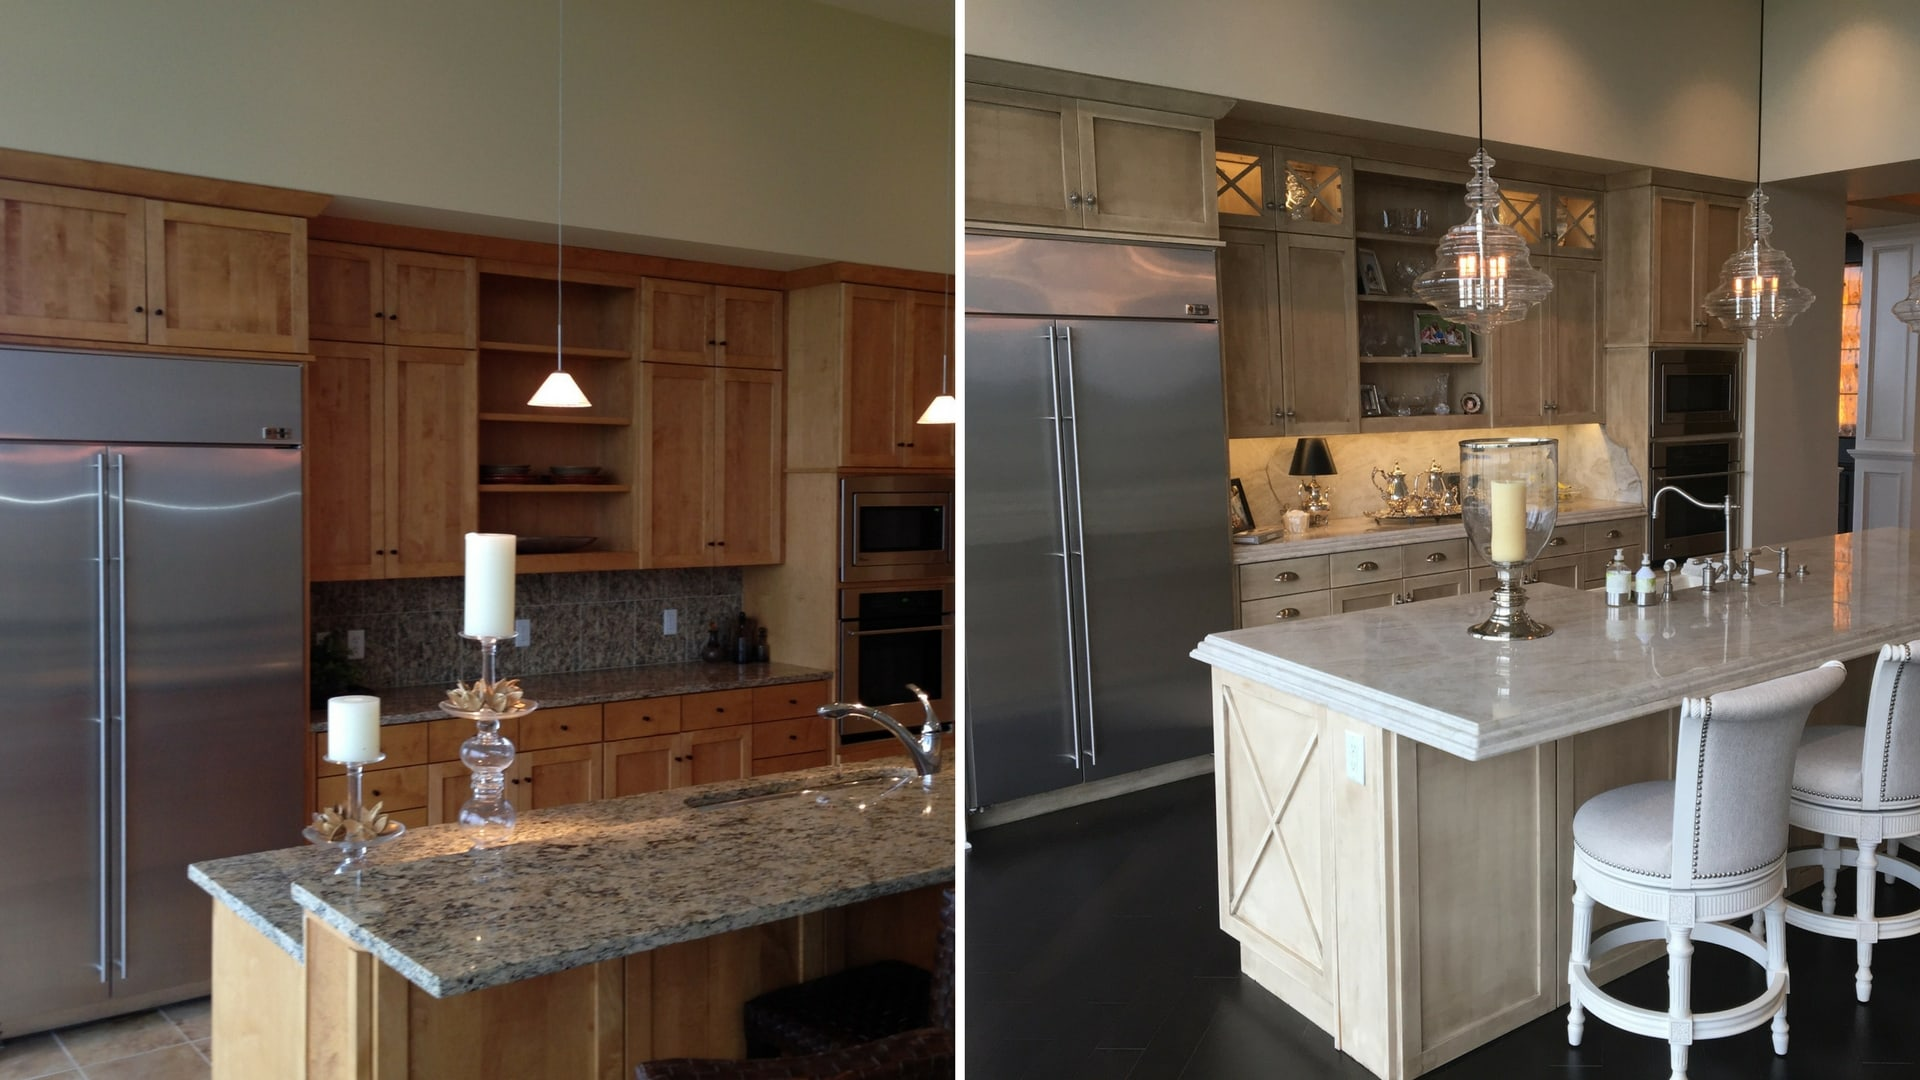 Penthouse Kitchen Before and After